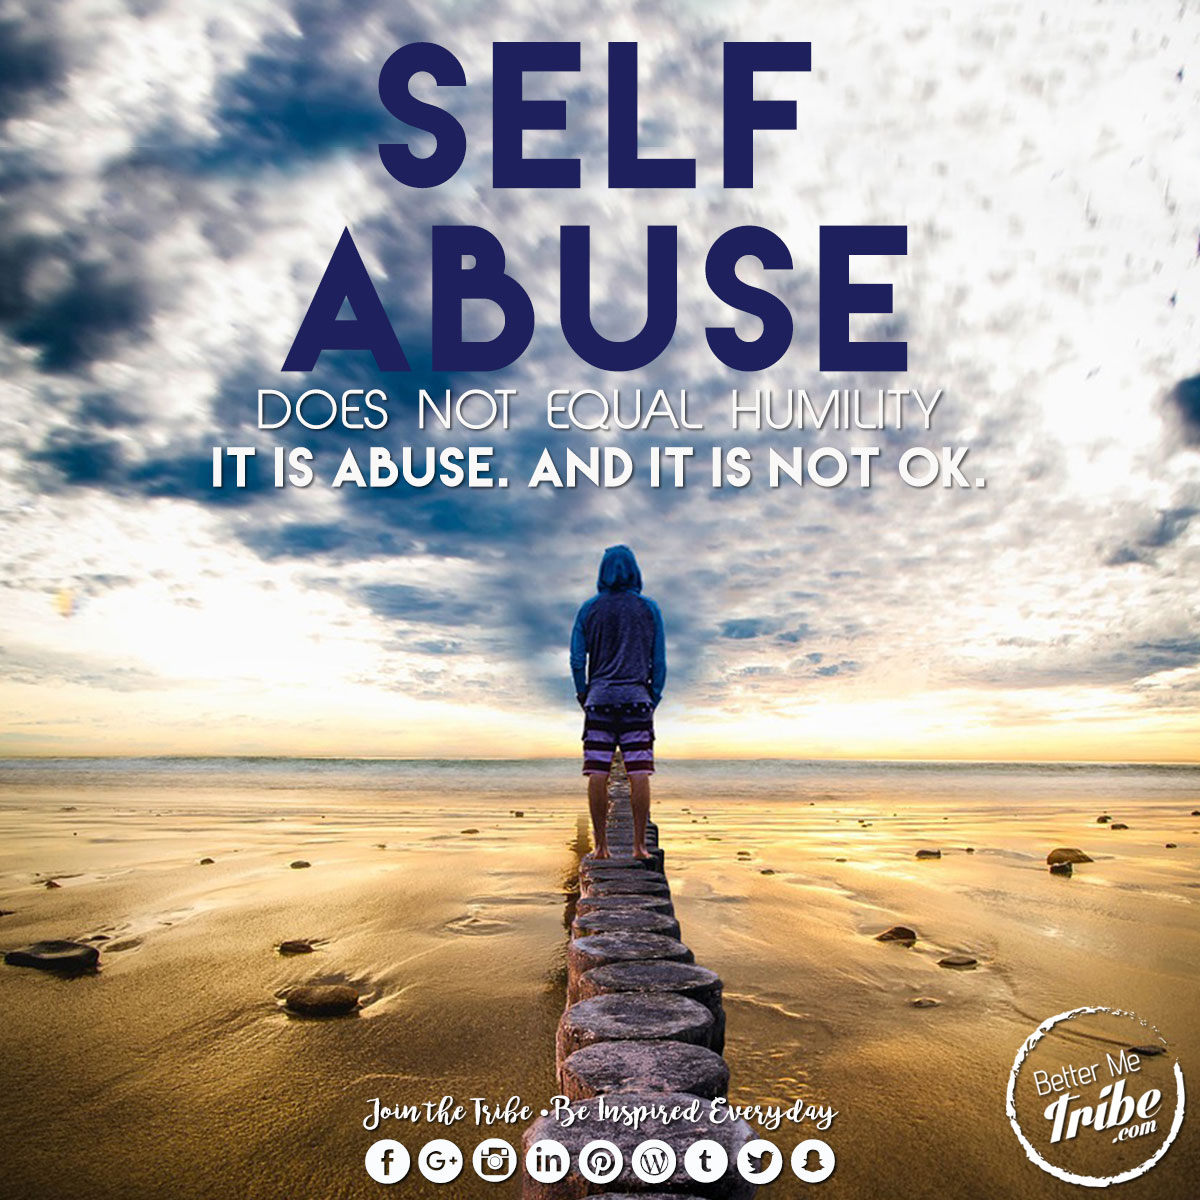 Self-Abuse is Just Abuse